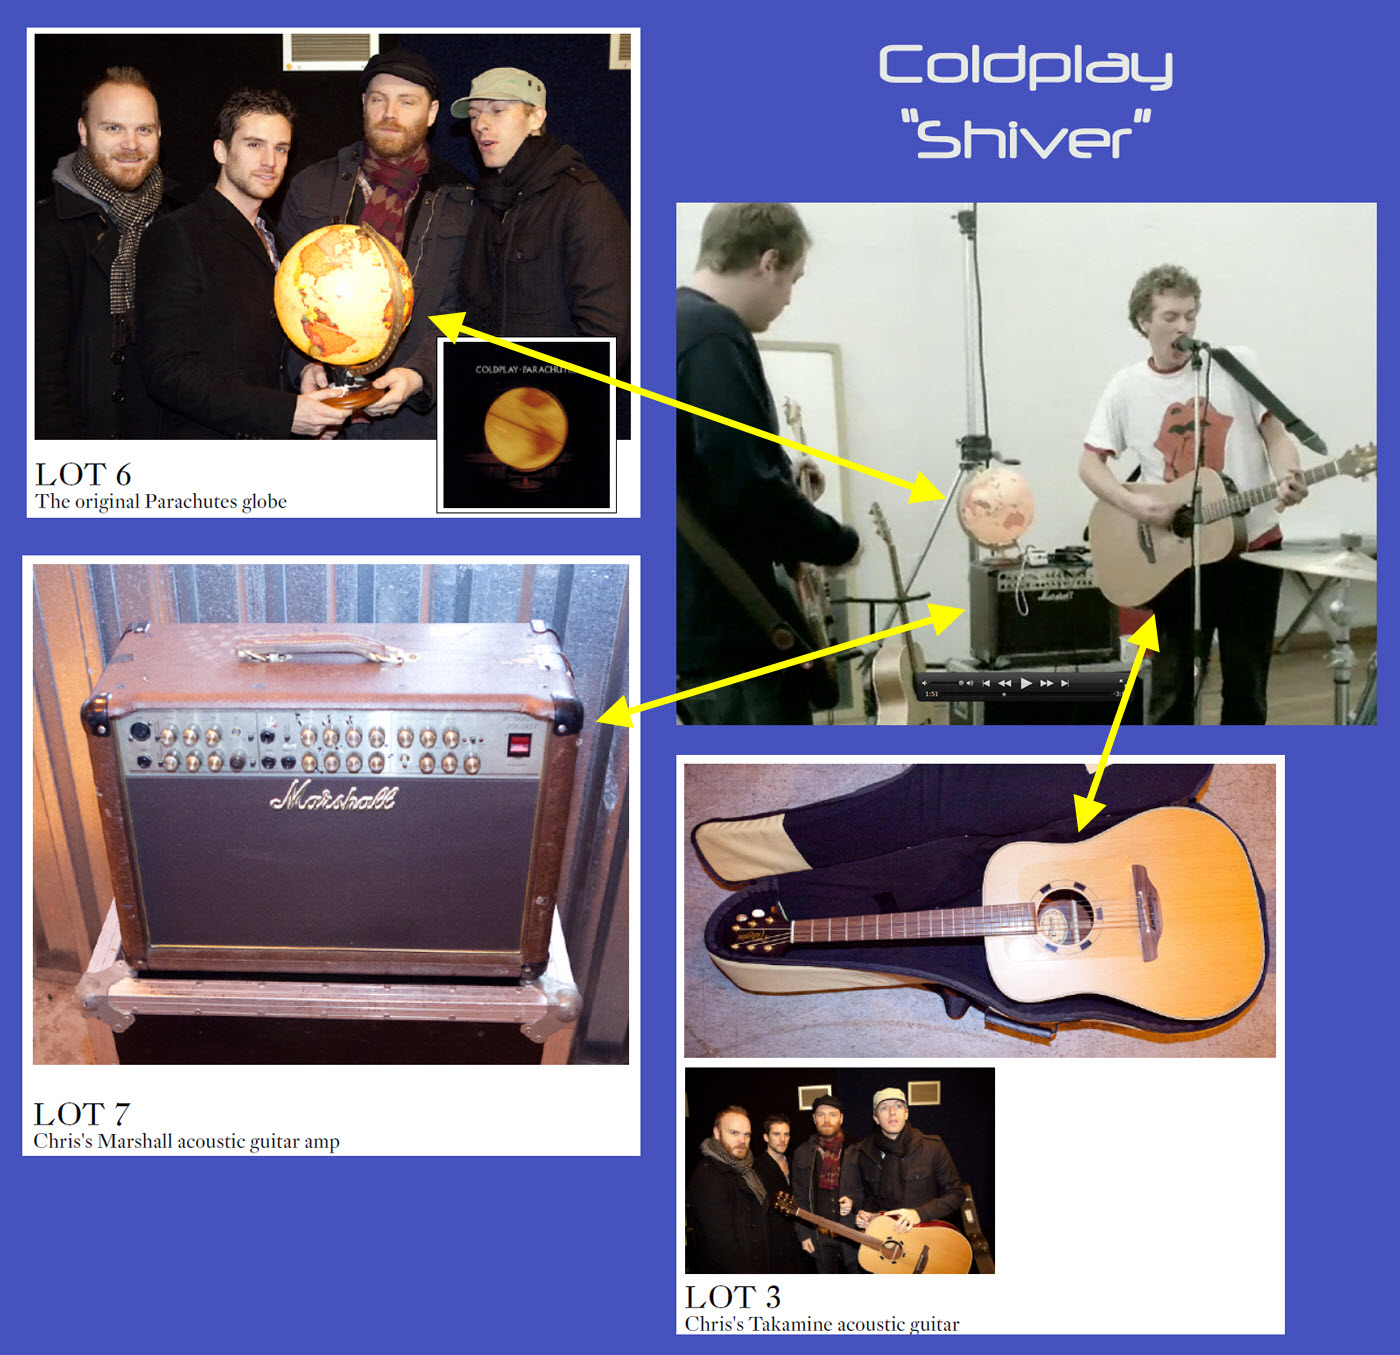 Coldplay End Of Decade Clearout Sale Memorabilia Auction Raises Over 400 000 For Charity Ebay Auction Results